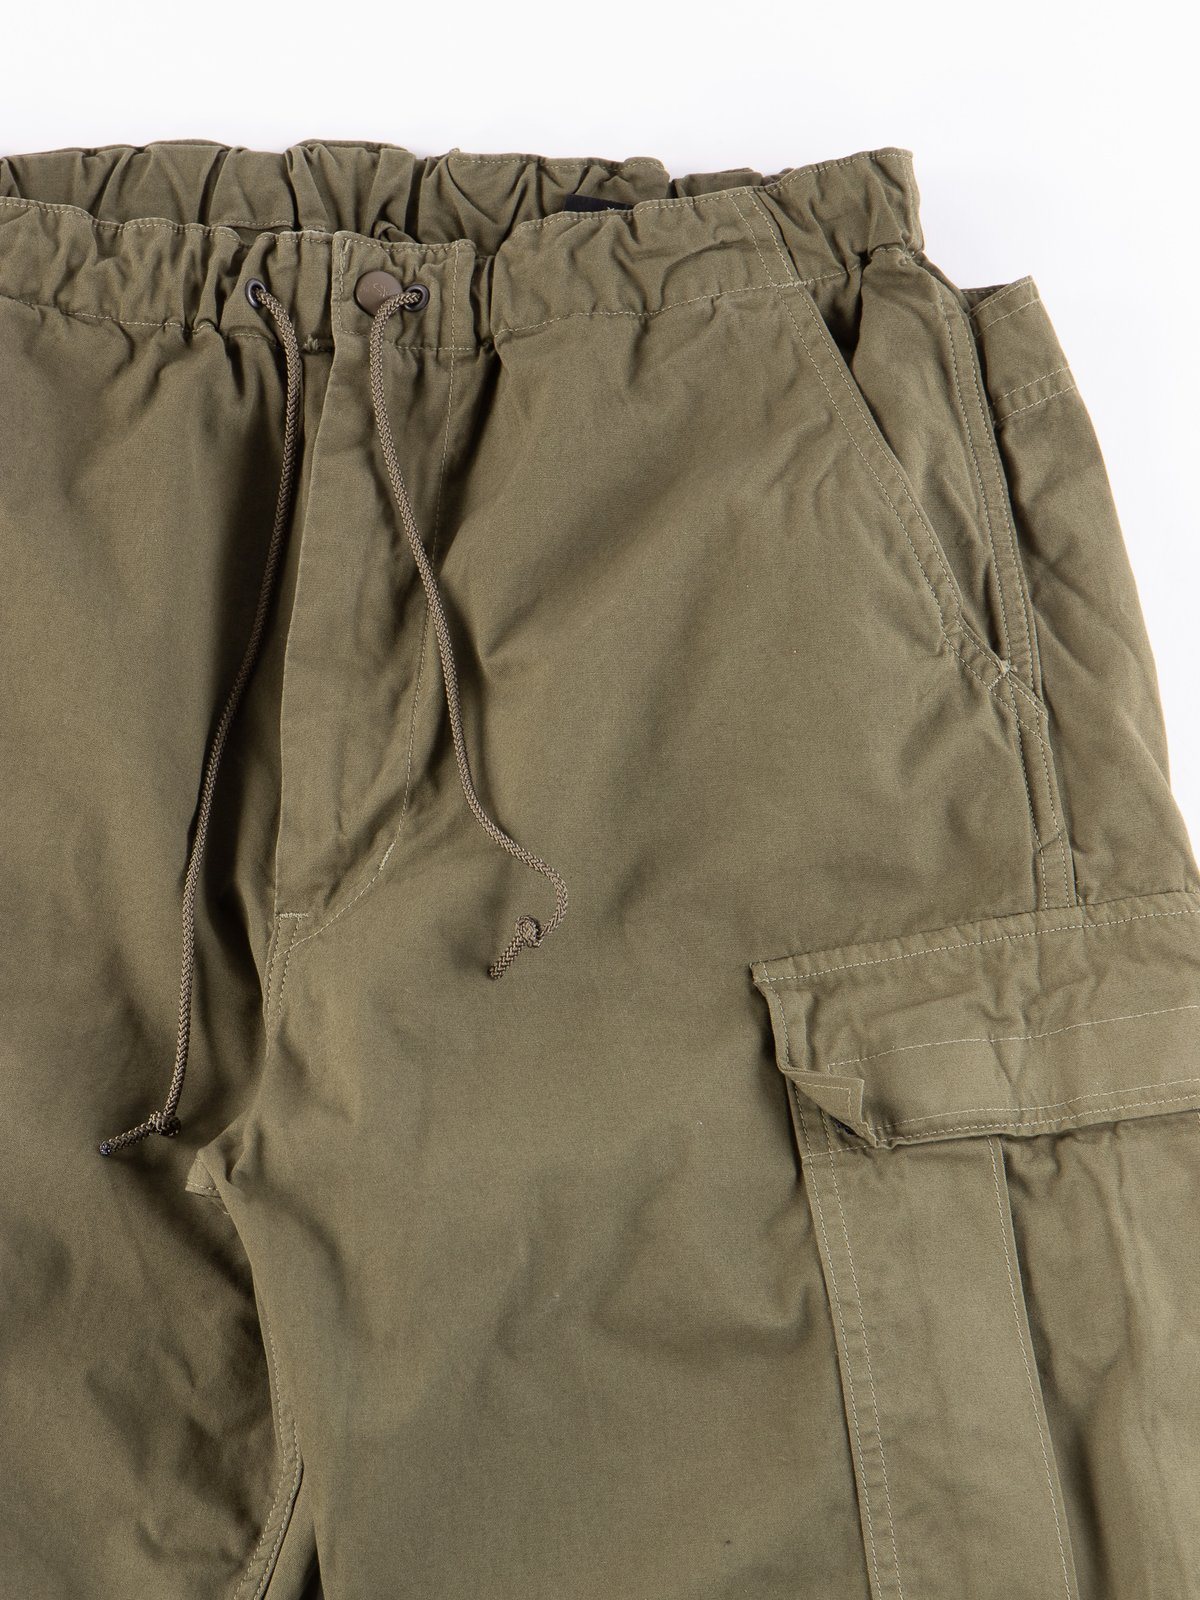 Army Weather Cloth Easy Cargo Pant - Image 4